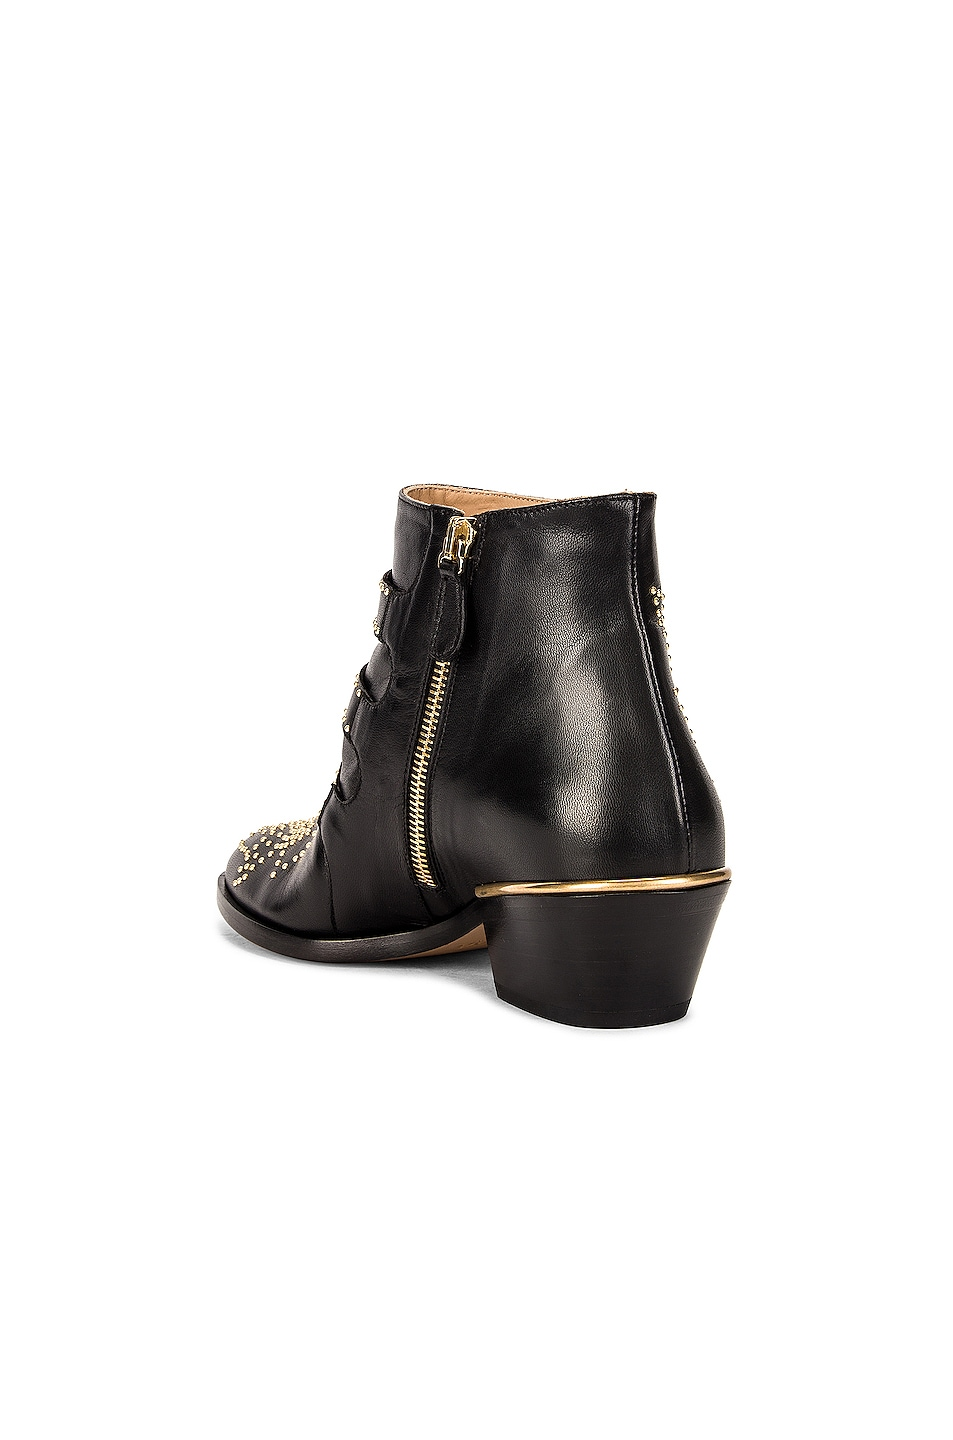 Image 3 of Chloe Susanna Leather Studded Booties in Black